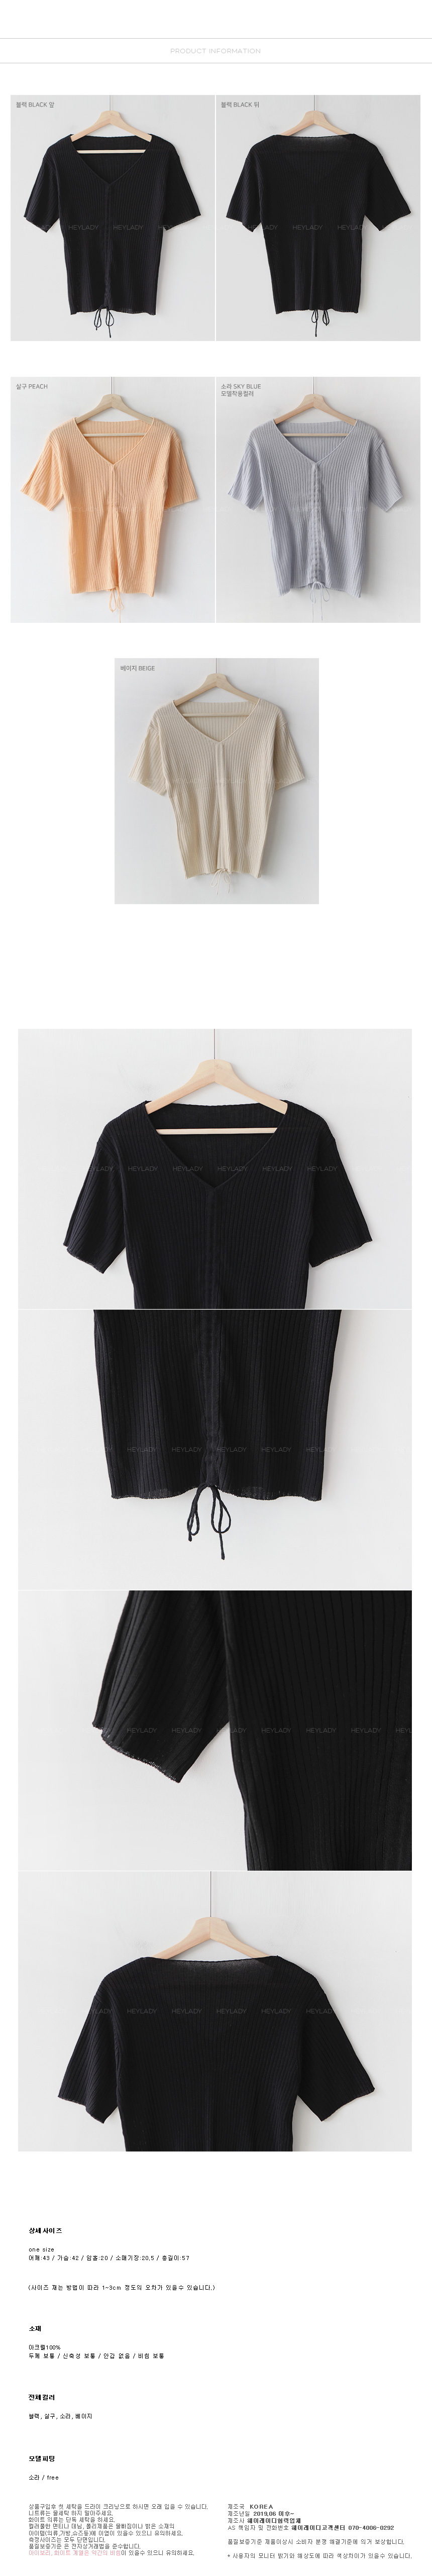 Silhouette string knit